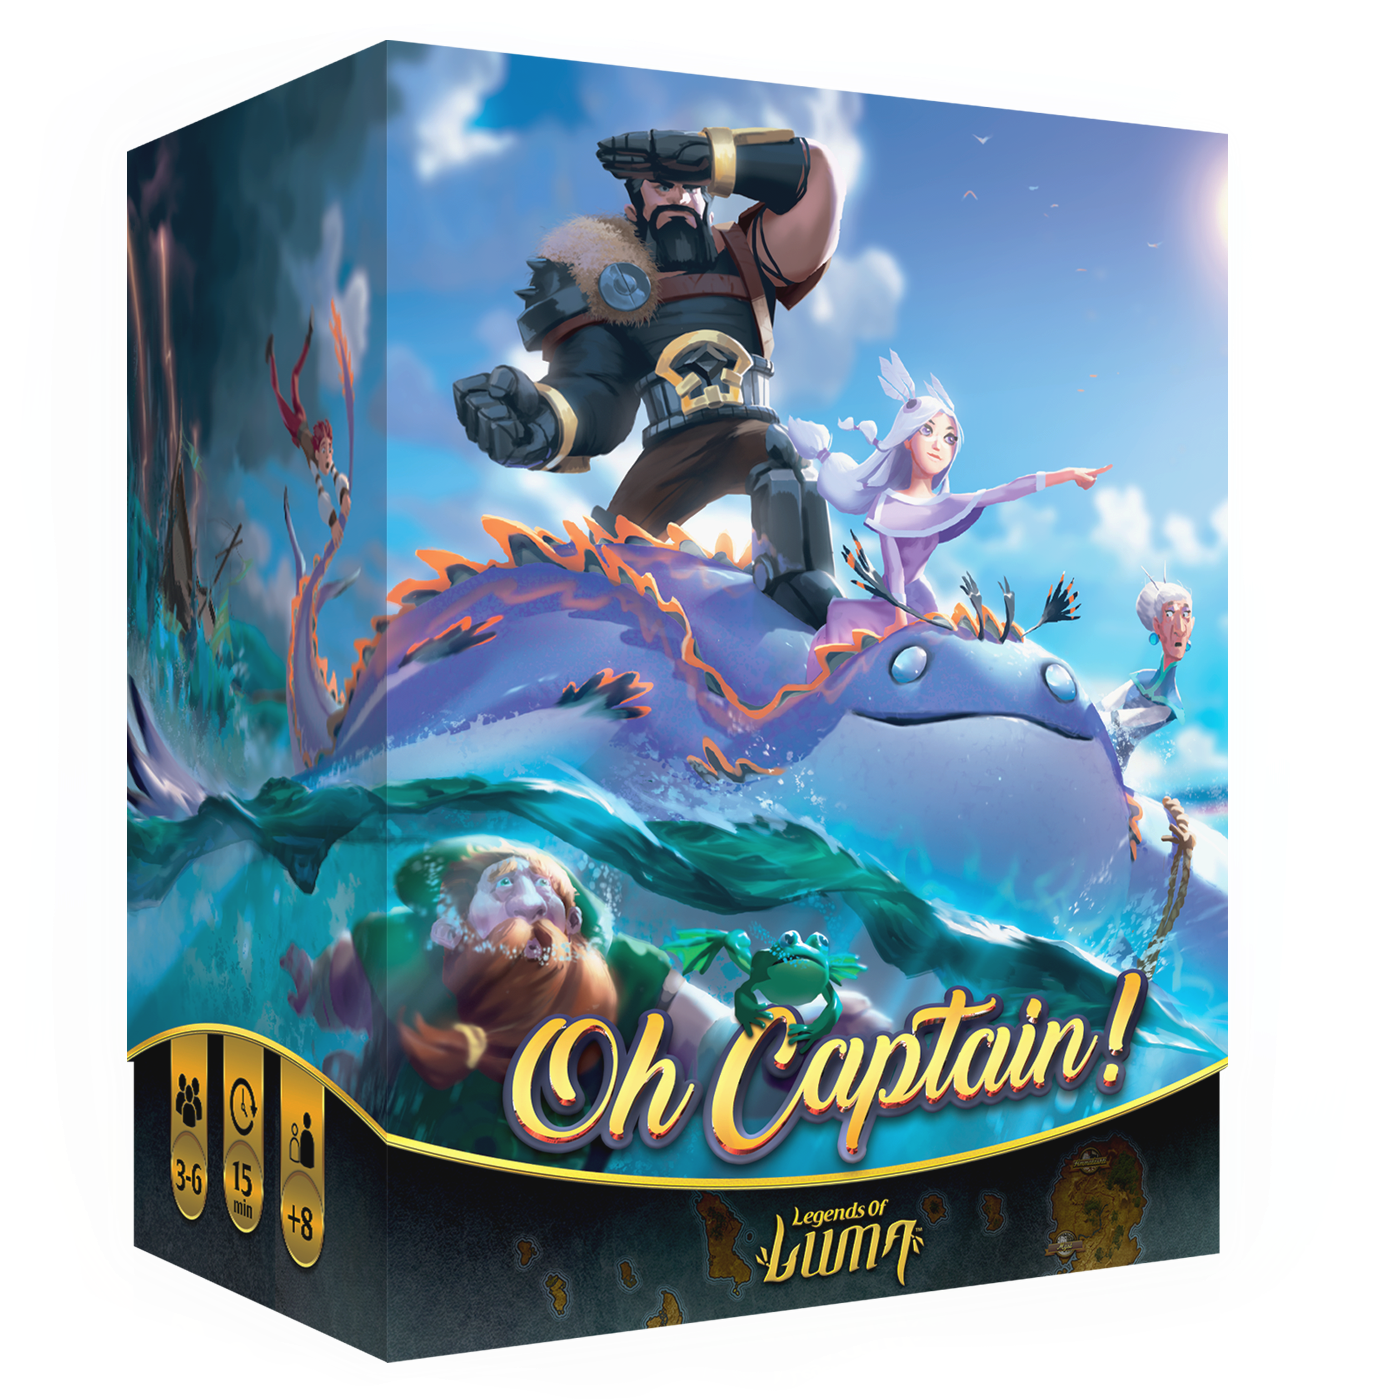 Oh Capitaine ! Legend of luma